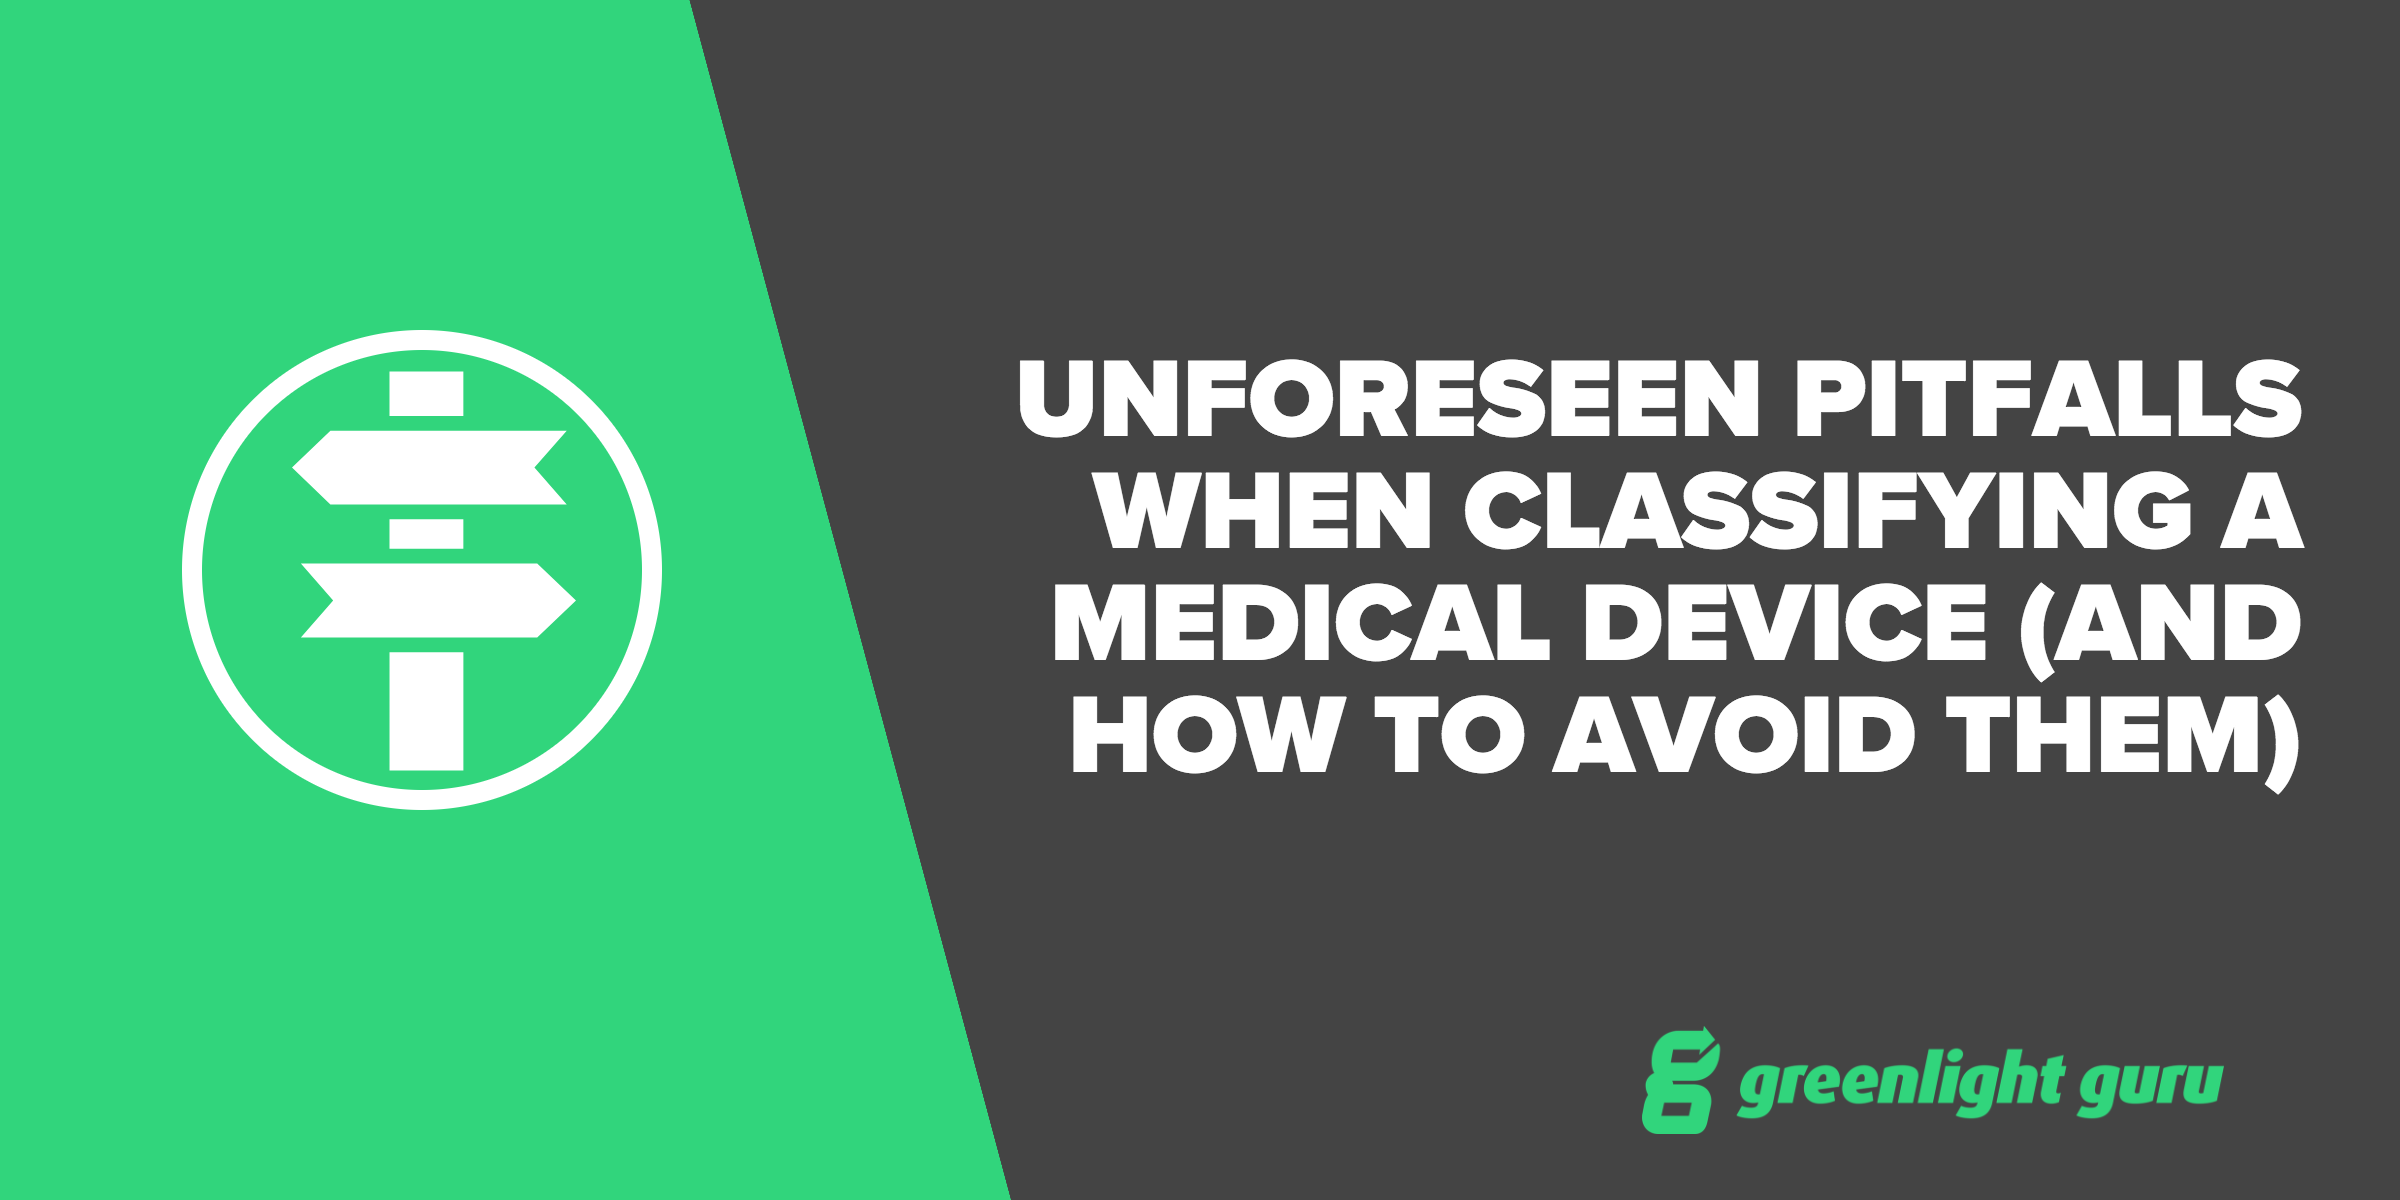 This is a What … Unforeseen Pitfalls when Classifying a Medical Device - Featured Image